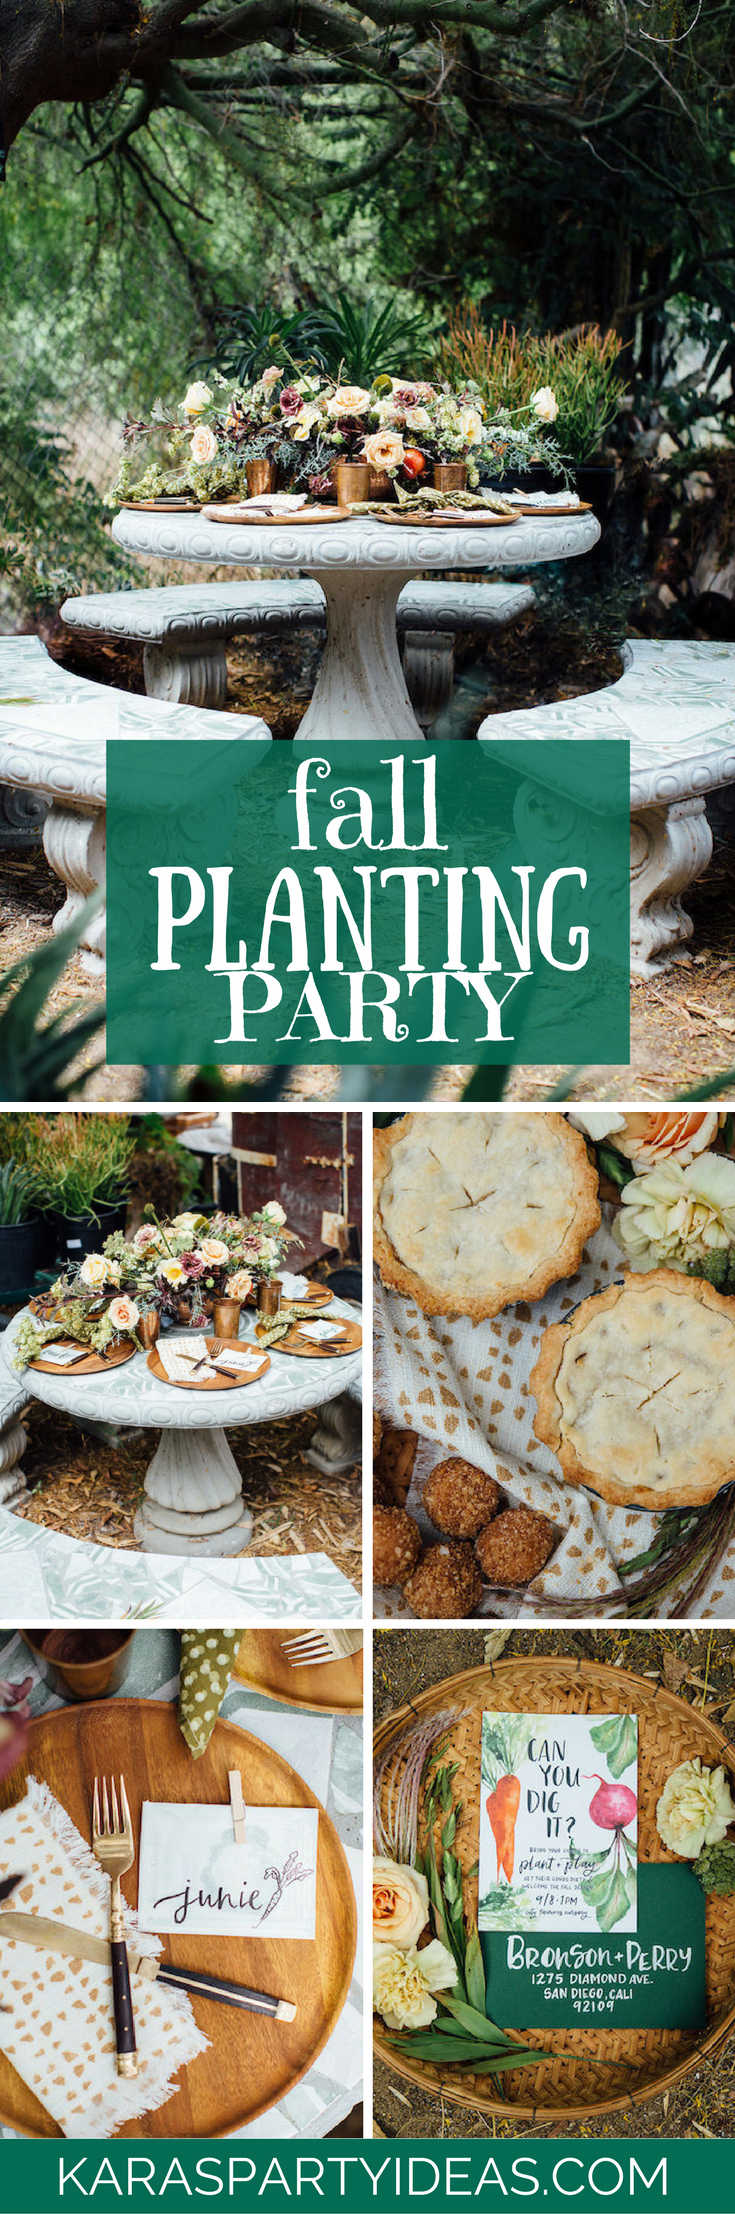 Fall Planting Party via Kara's Party Ideas - KarasPartyIdeas.com